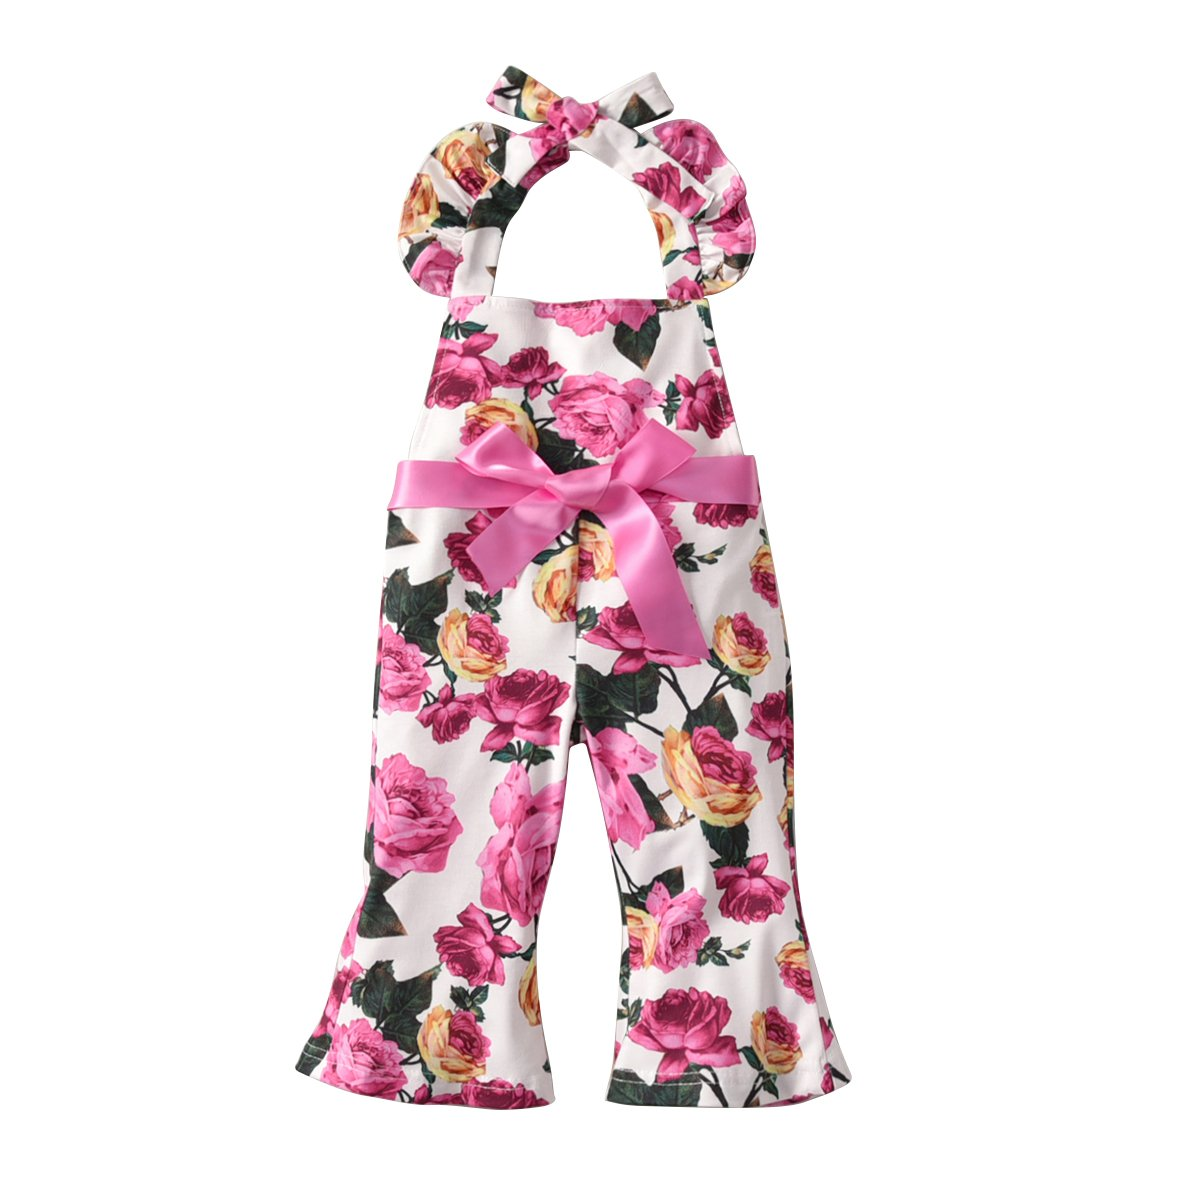 Cute Summer Infant Kid Baby Girl Romper Jumpsuit Ruffled Backless Romper Long Loose Pants Halter Outfit